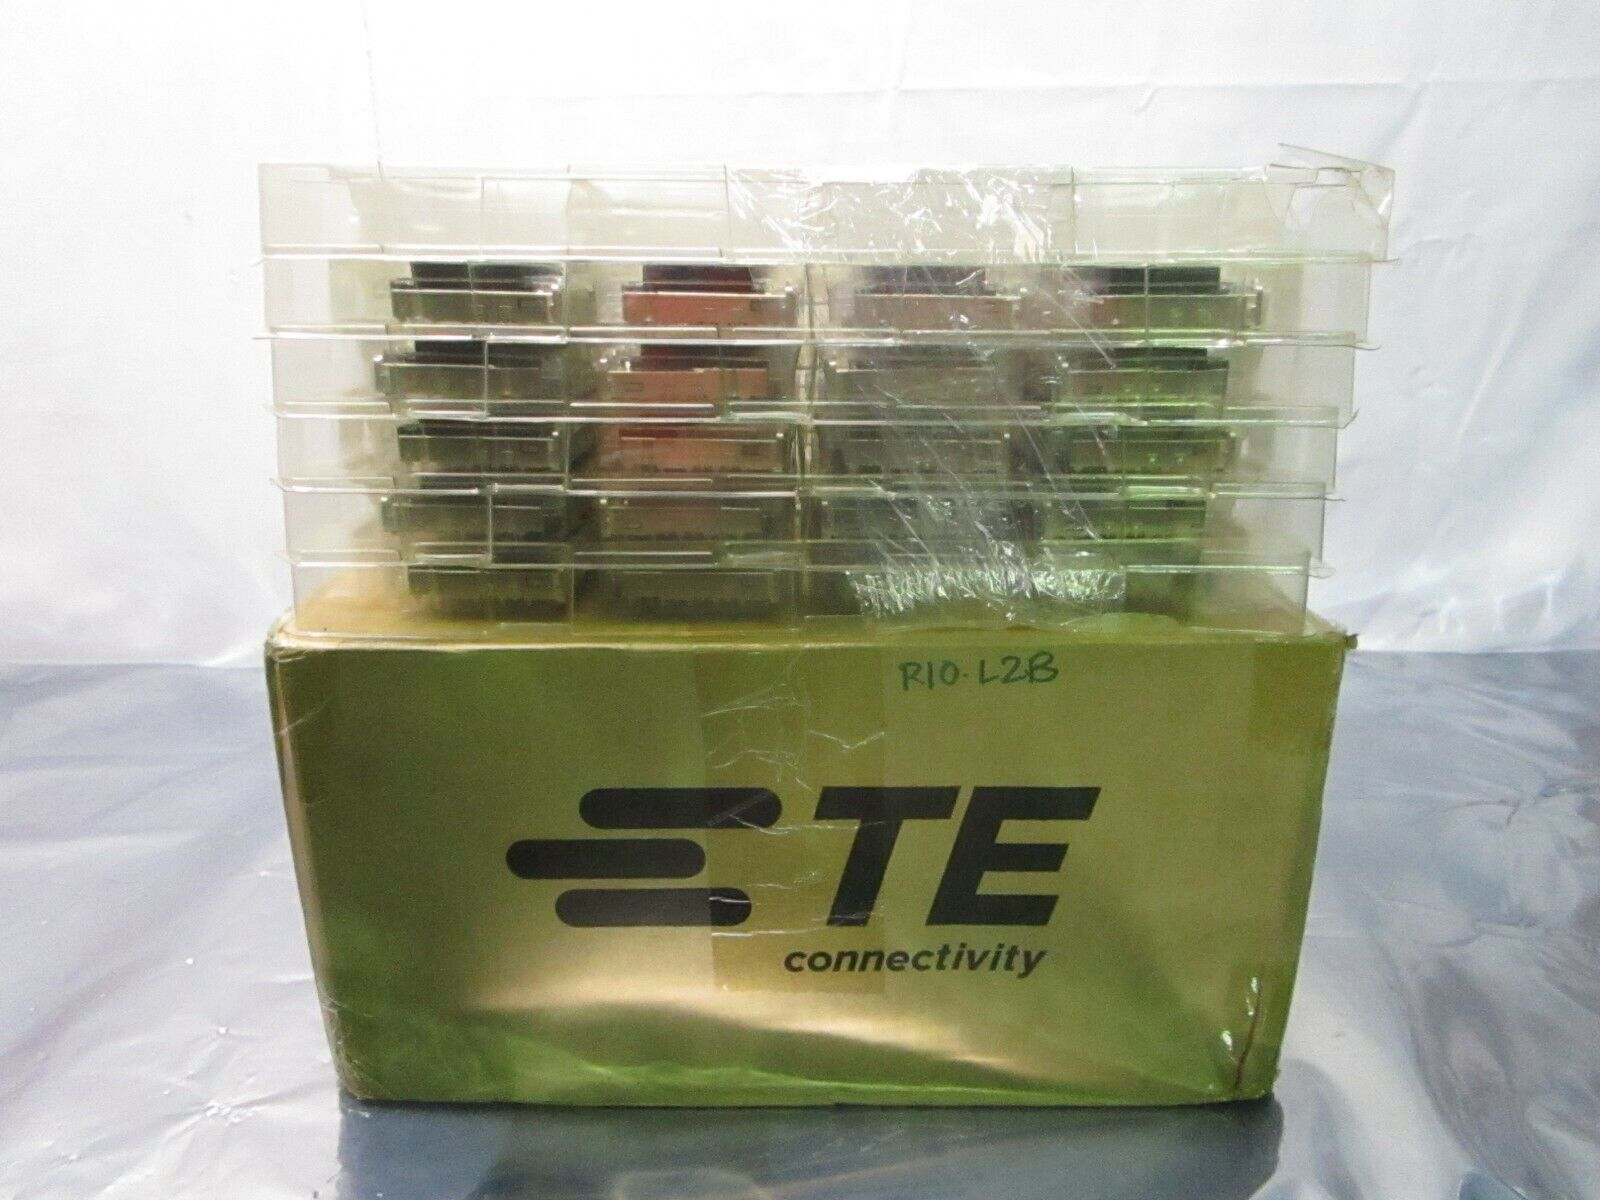 1 Lot of 40 TE connectivity AMP Brand 2170551-1 1X6 CAGE ASSEMBLY, 102416